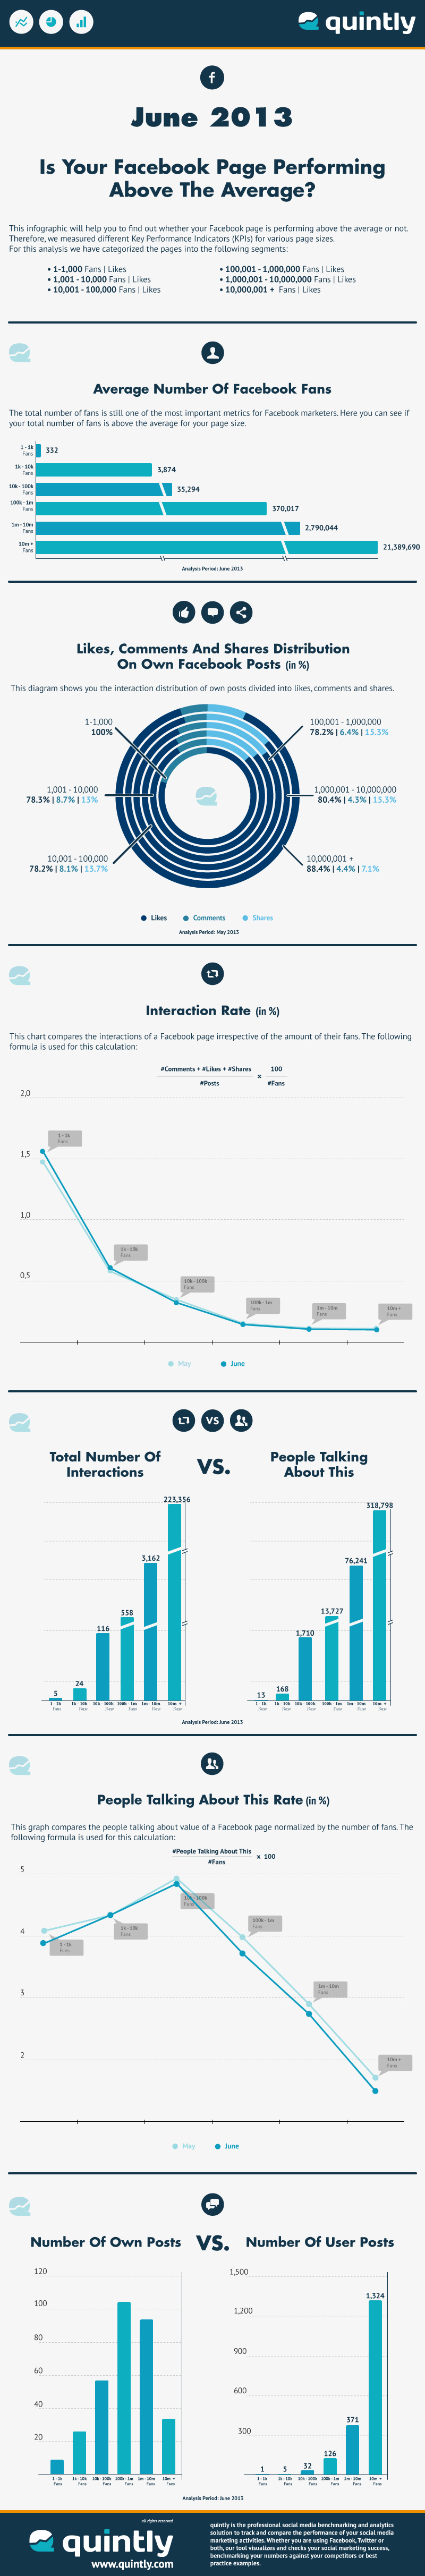 quintly Infographic: The Average Facebook Page Performance For June 2013